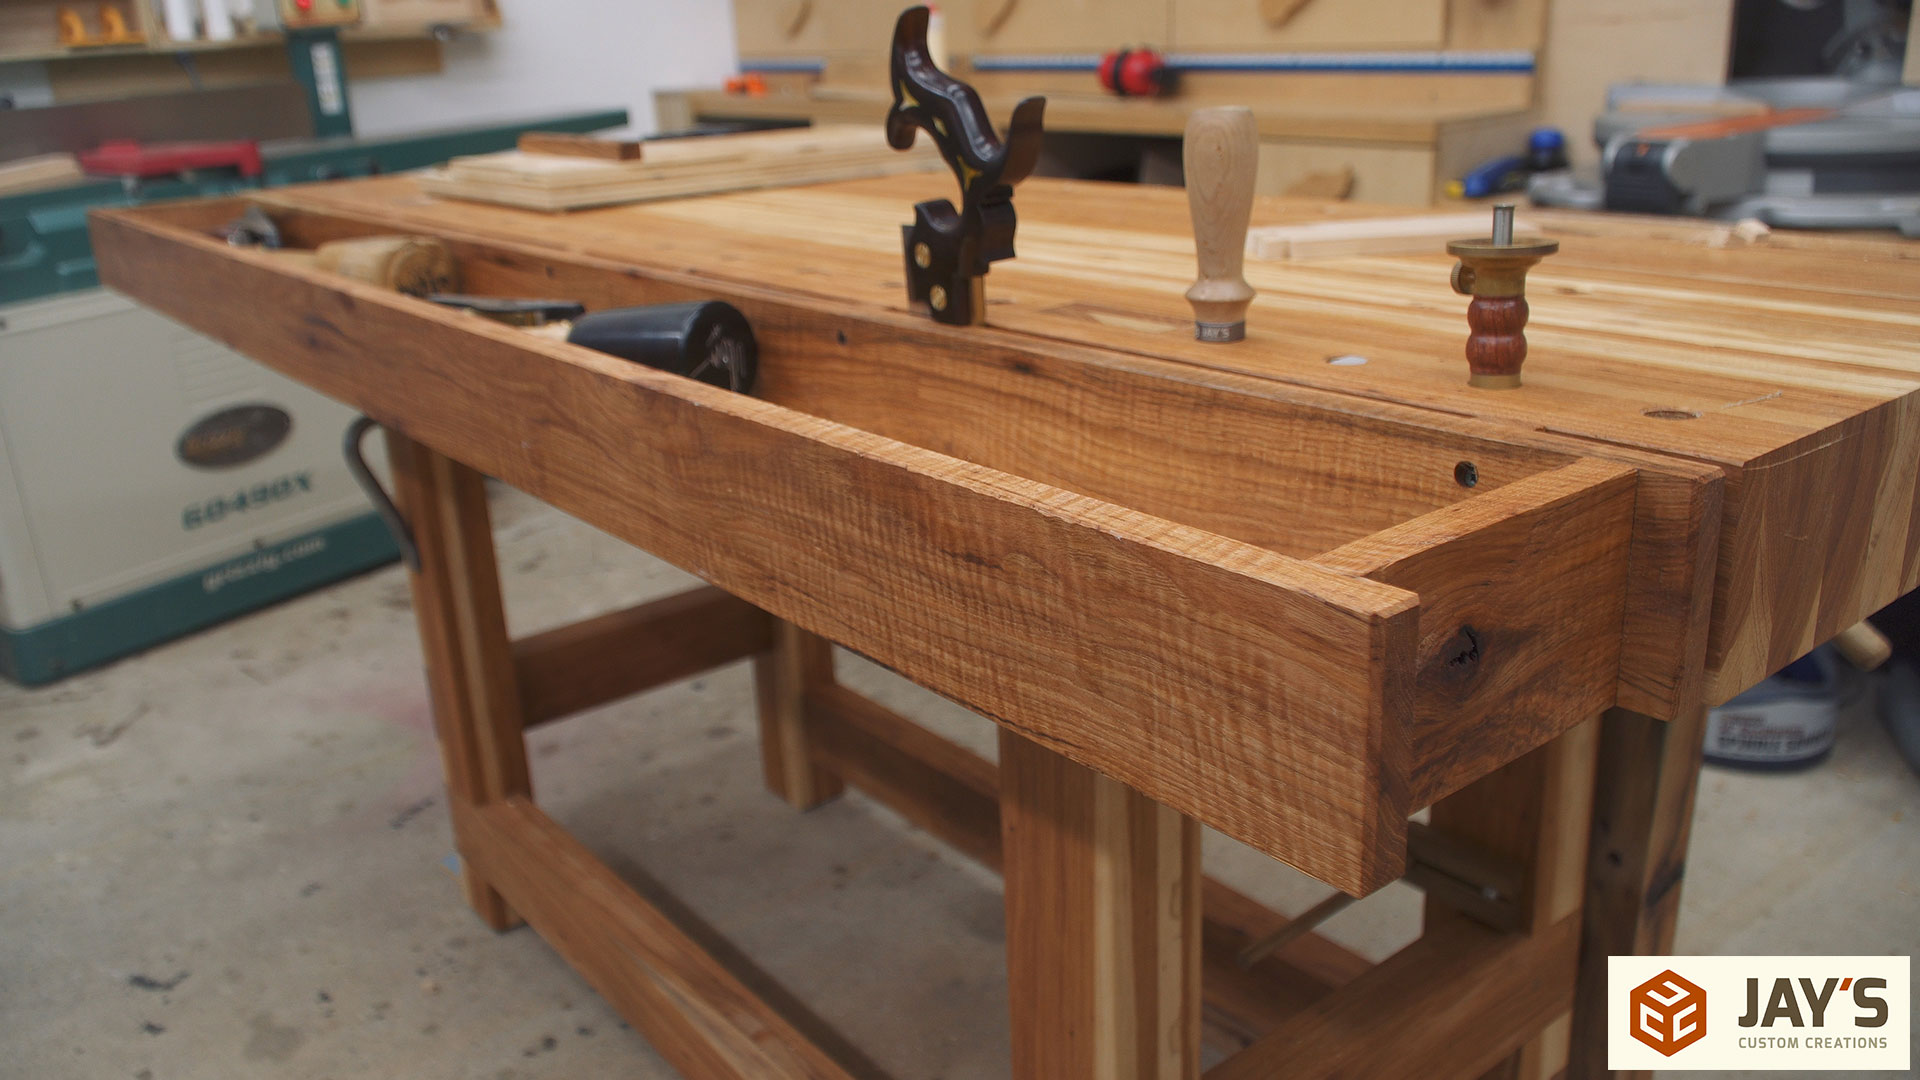 Woodworking Tool Bench Adding A Tool Well To A Workbench Jays Custom Creations